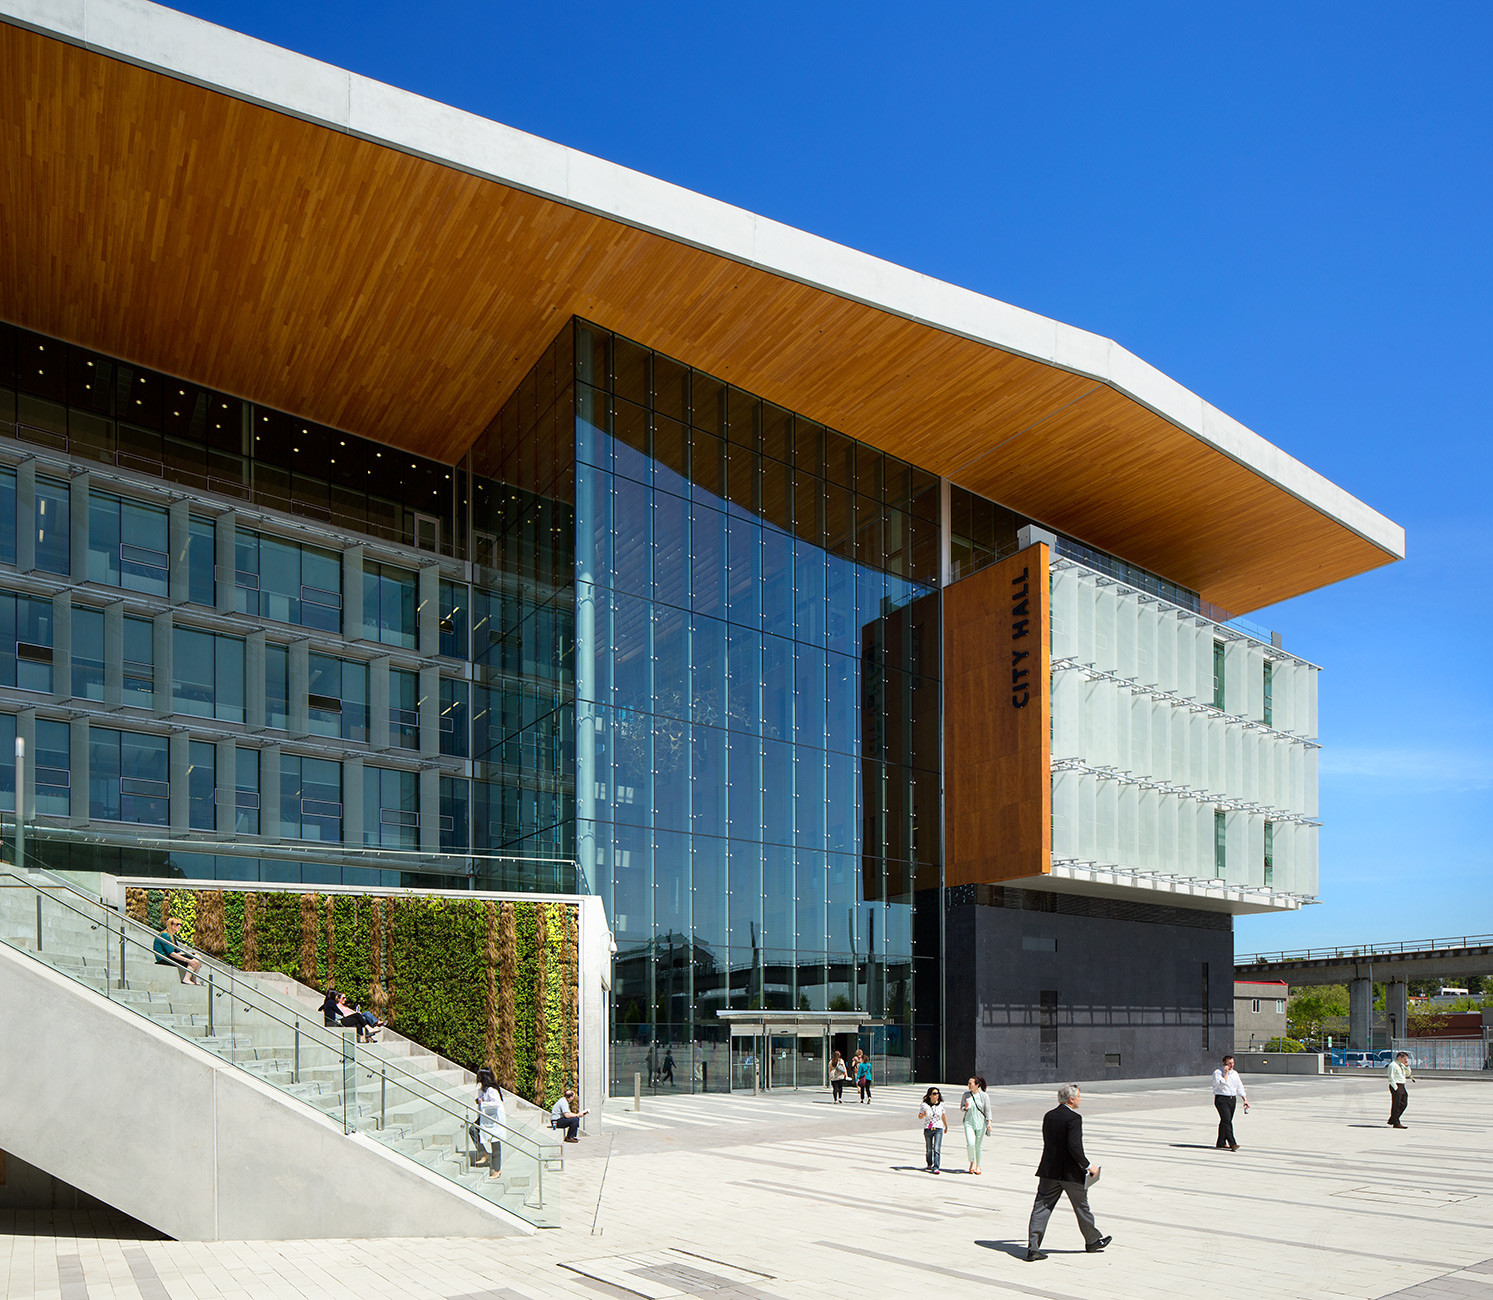 http://mtarch.com/projects/surrey-city-hall-and-city-hall-plaza/